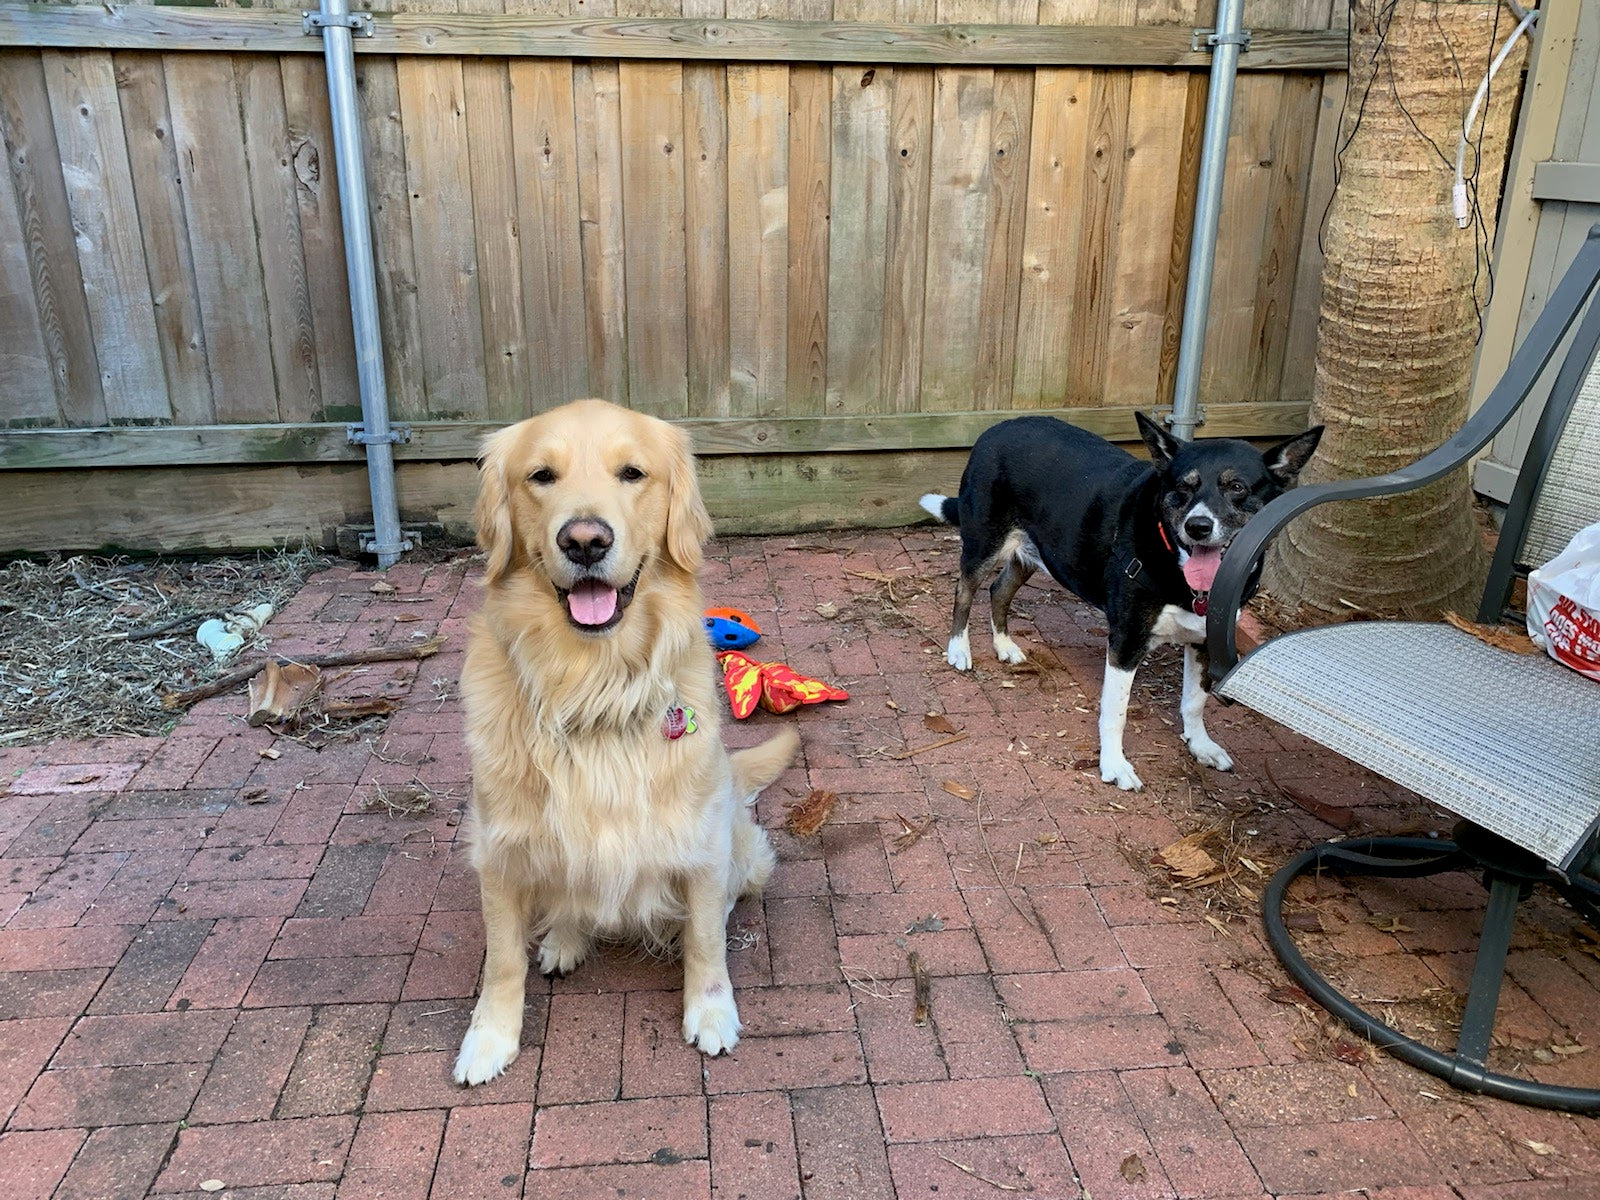 Two dogs standing on an outdoor patio